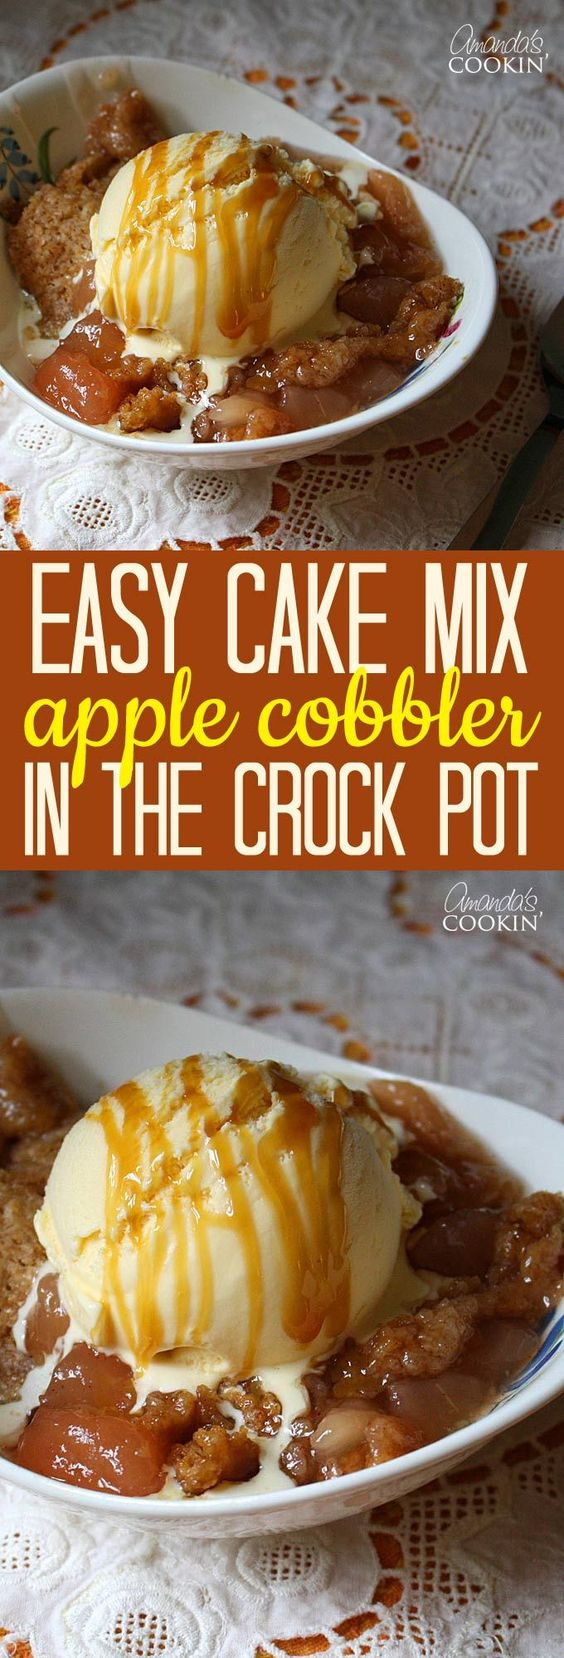 Easy cobbler recipe using cake mix